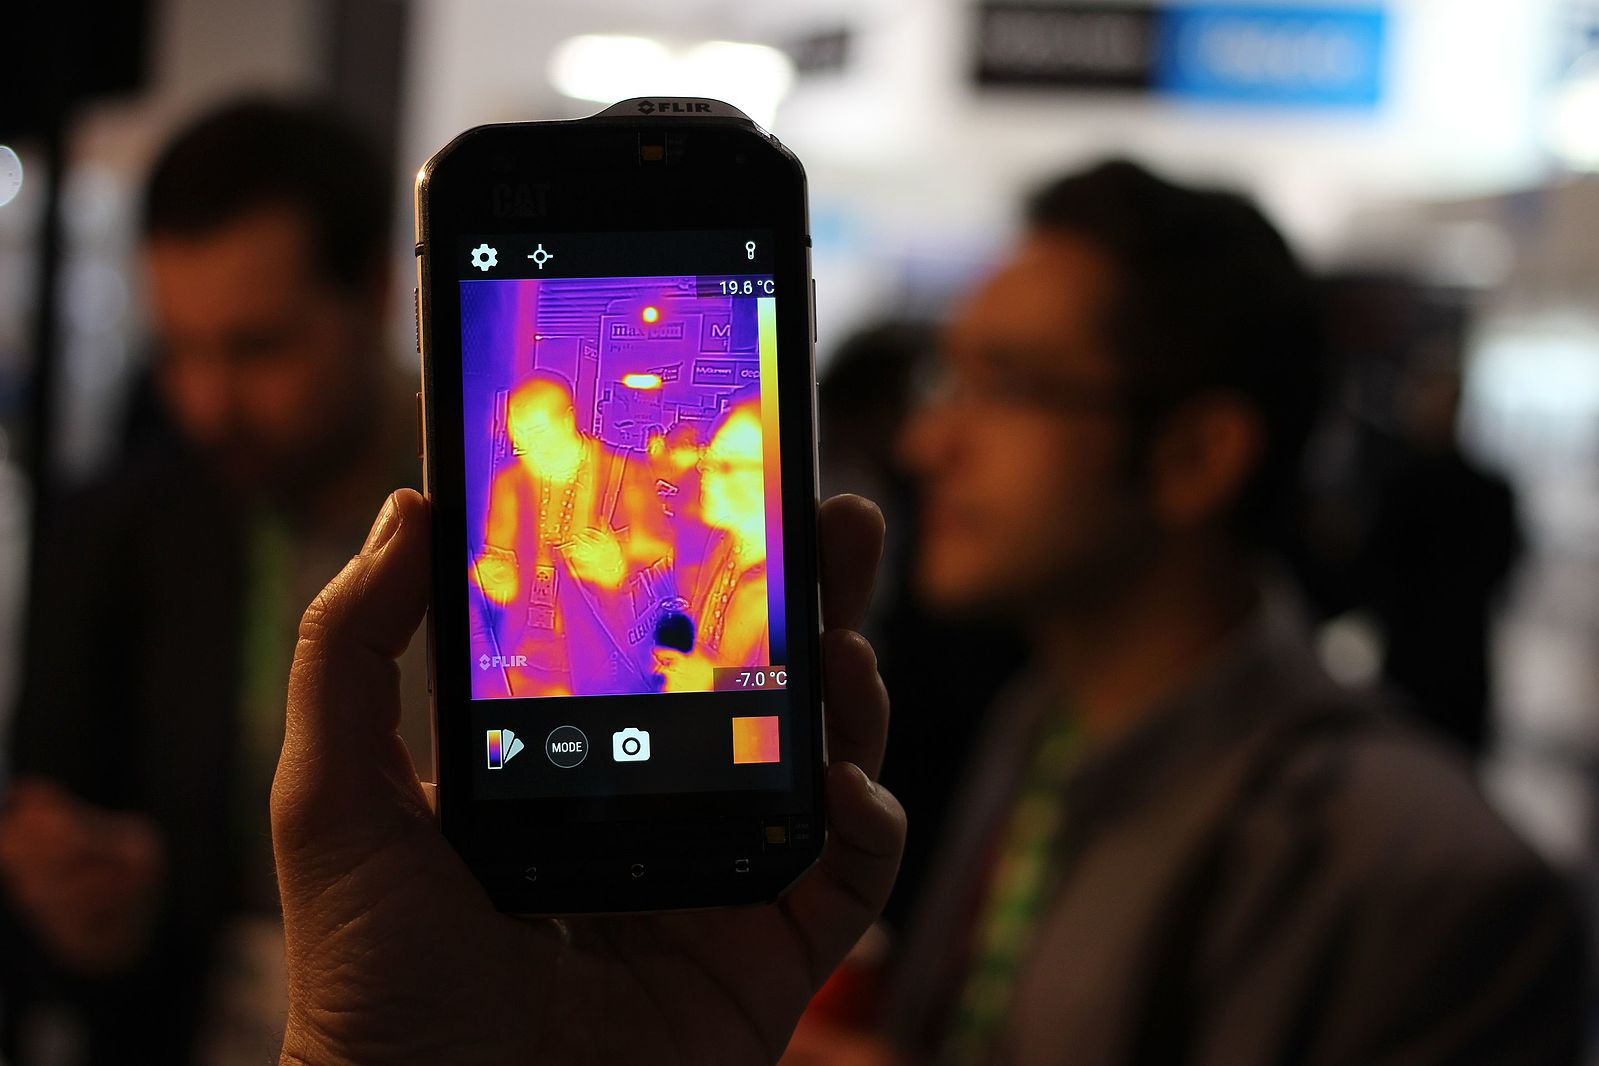 Thermal Cameras are Preventing COVID-19 from Spreading further